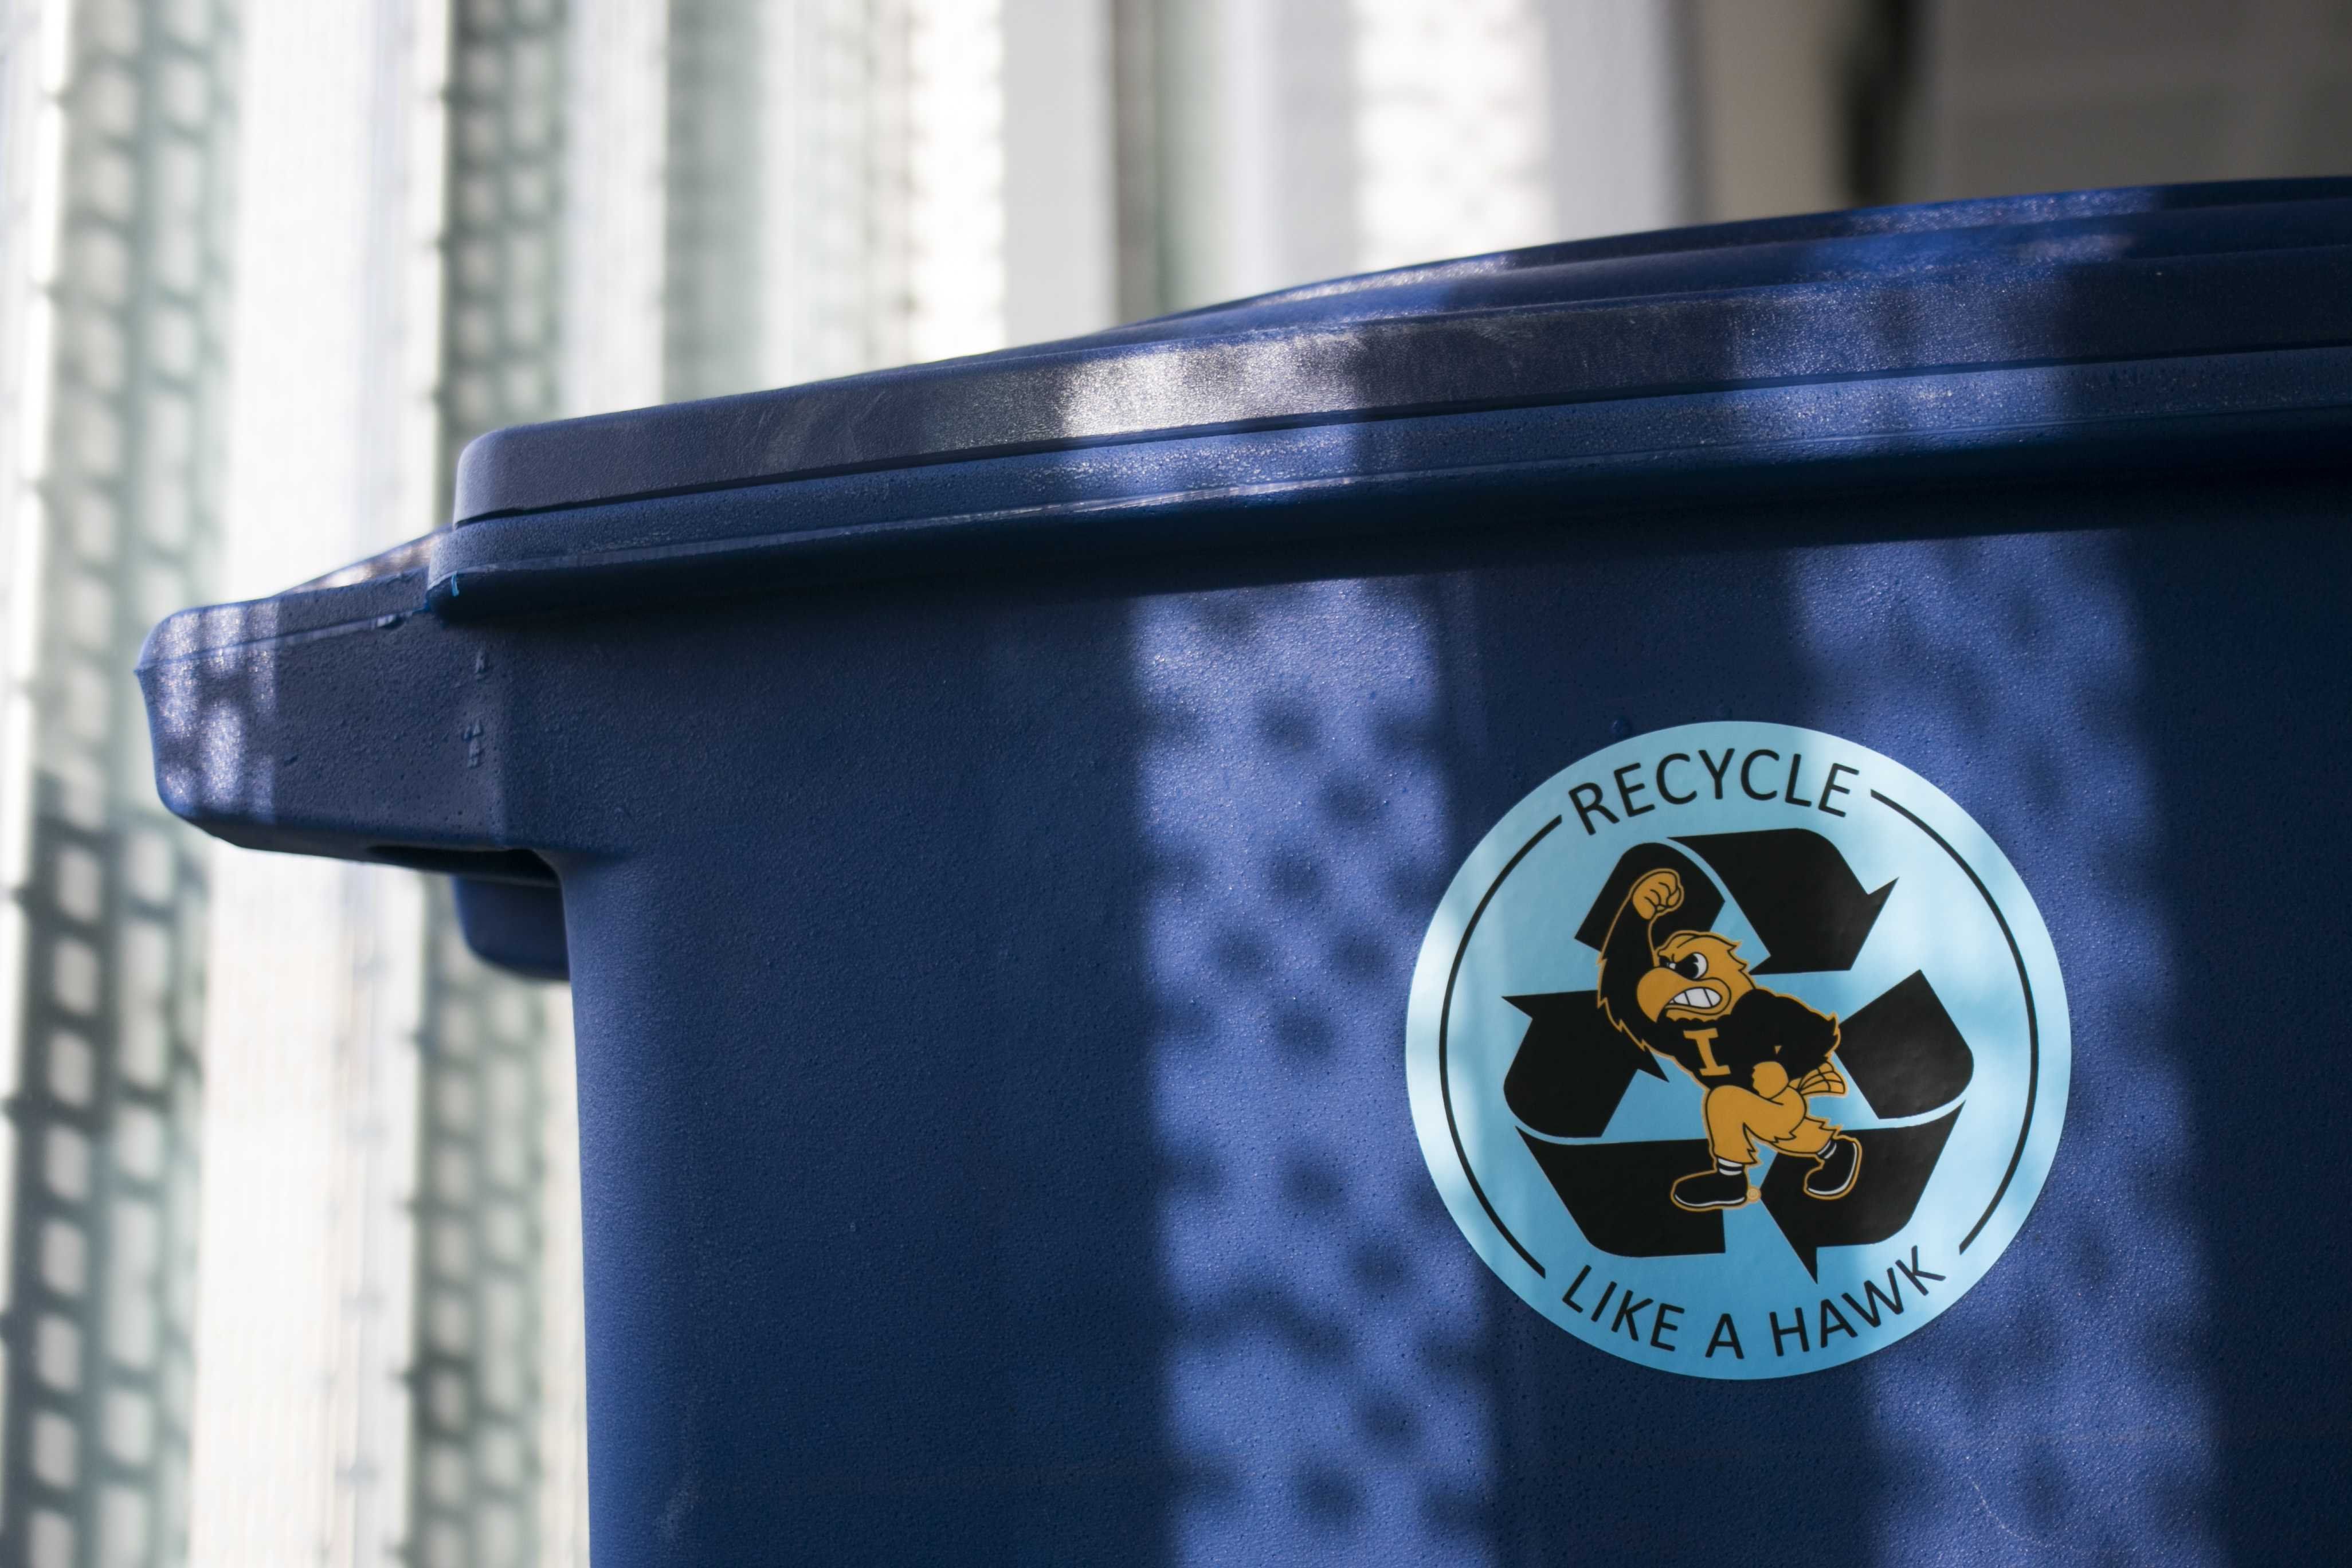 Blue recycling bins are seen inside the Seamans Center on Tuesday, Nov. 28, 2017. Seamans is in the process of undergoing a new recycling program to encourage students to recycle more recyclable products. (Joseph Cress/The Daily Iowan)